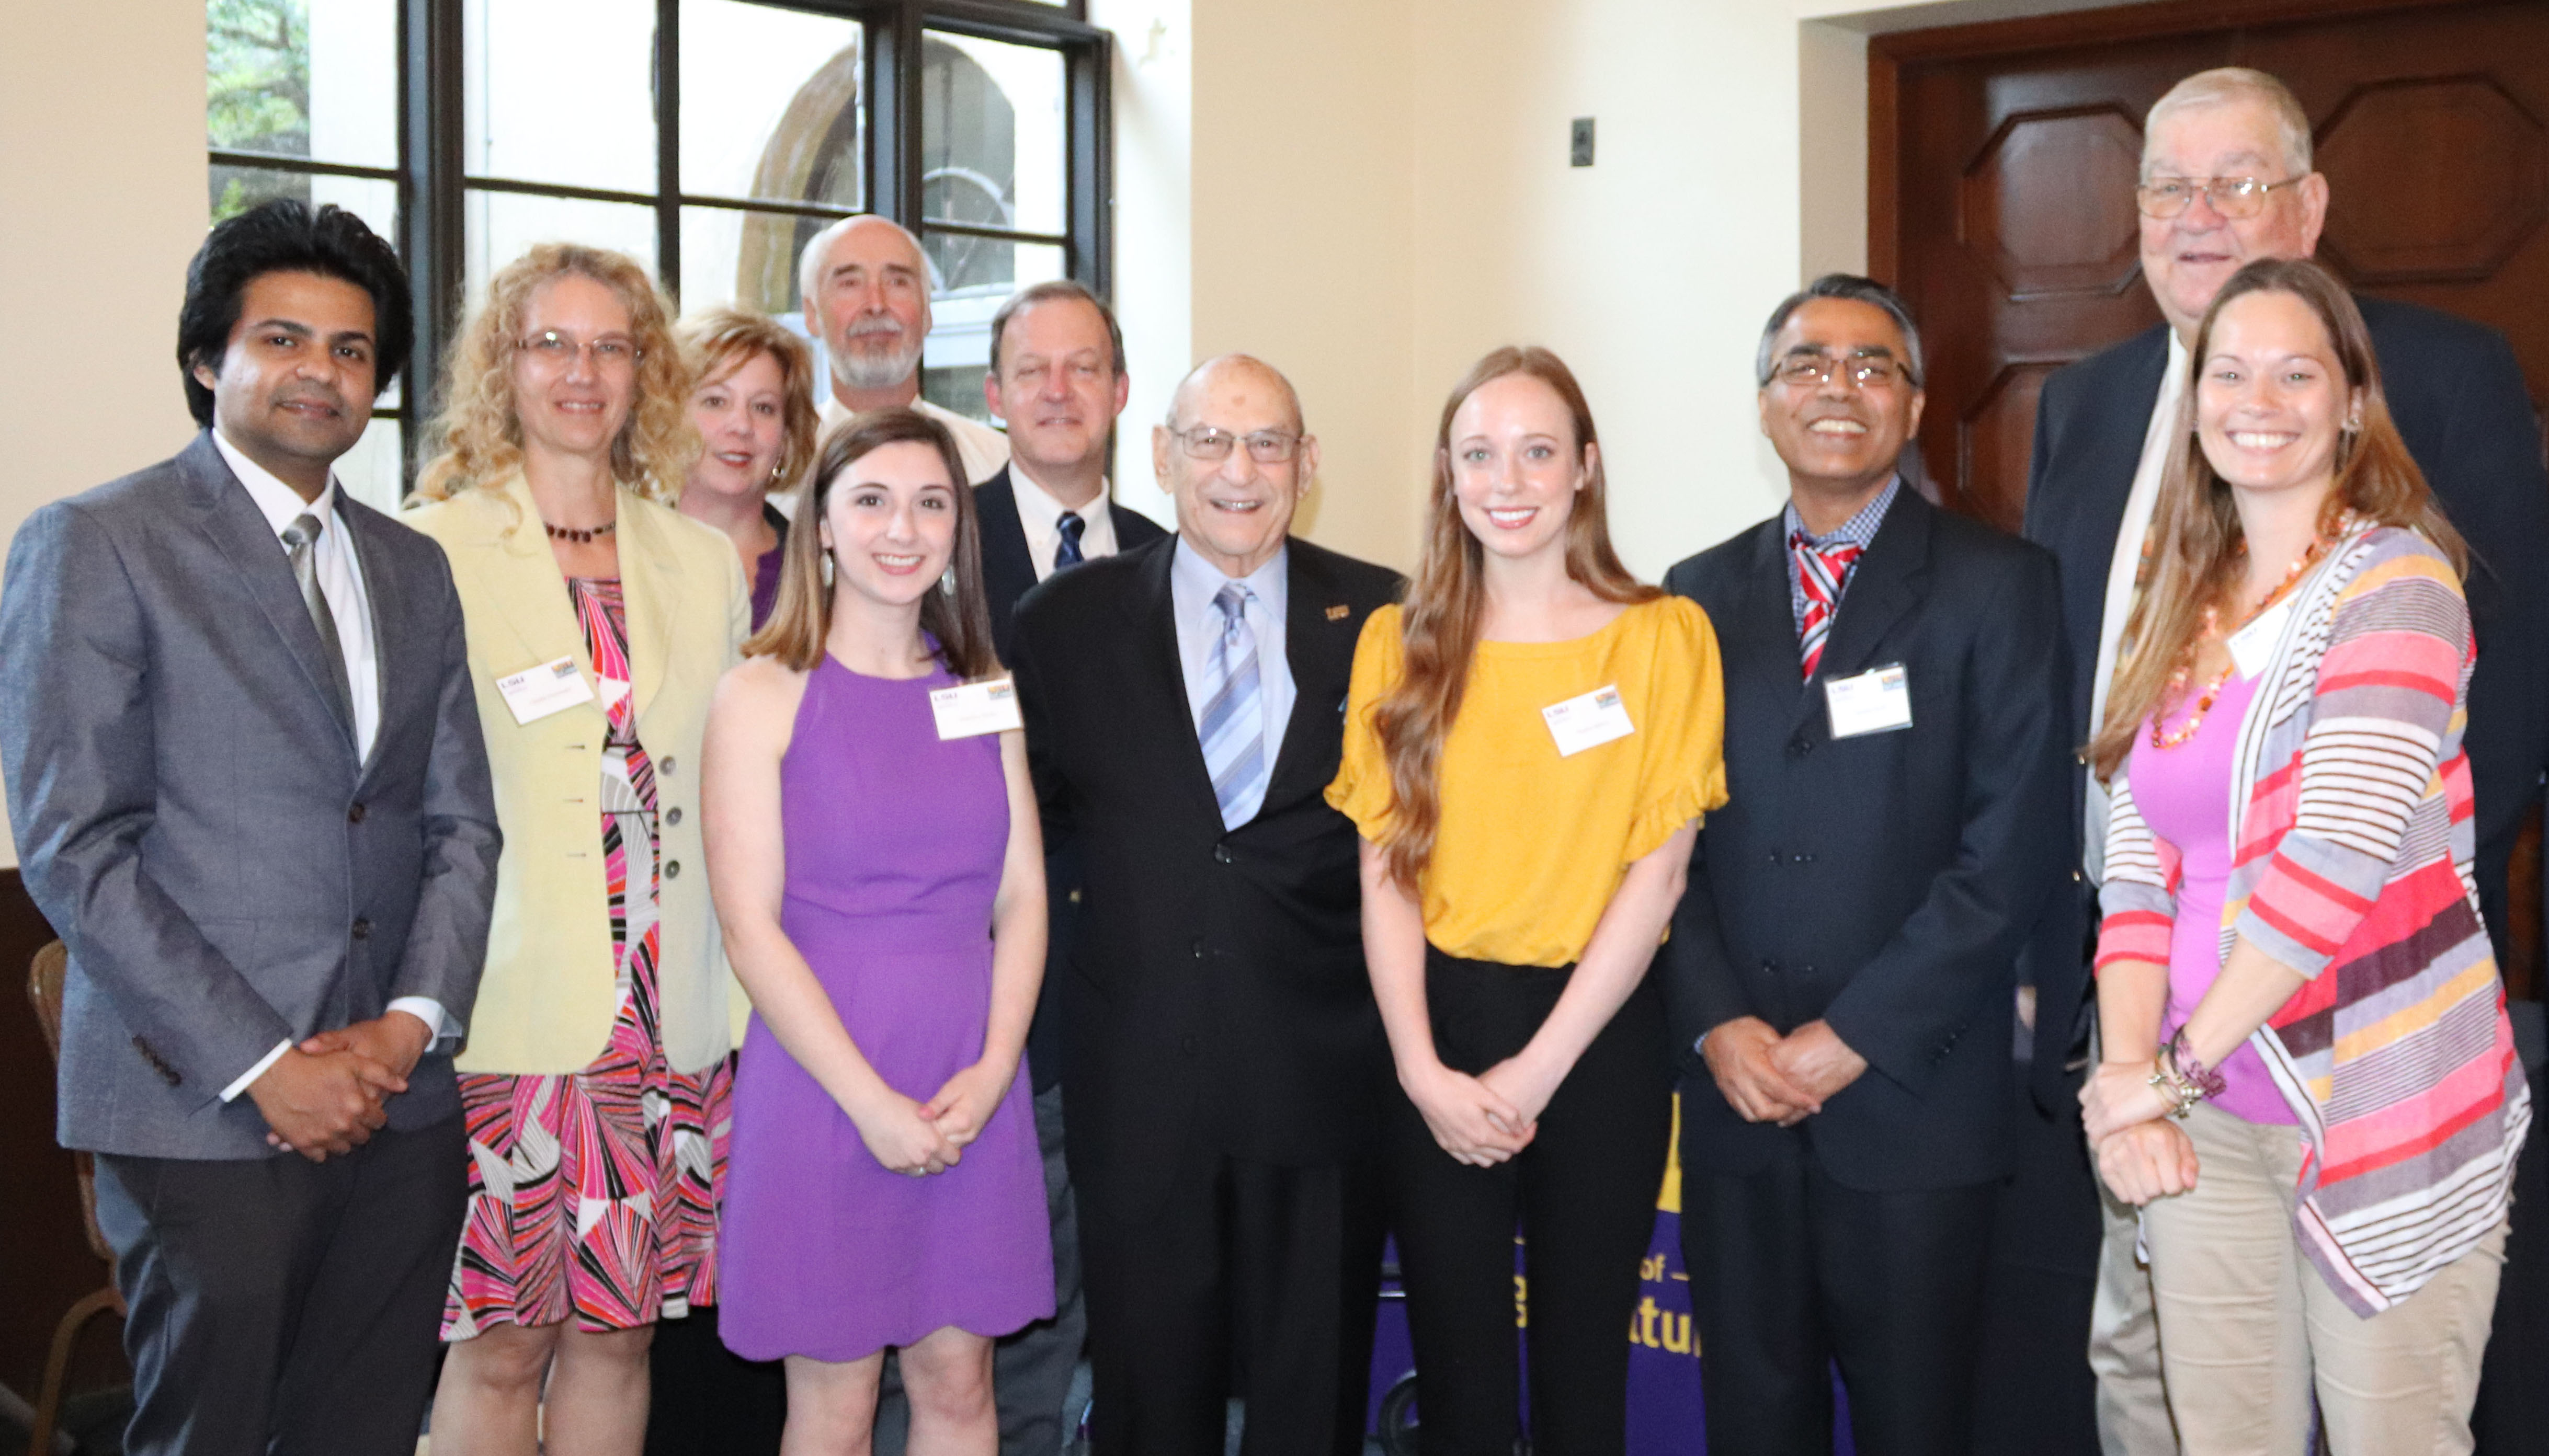 LSU College of Agriculture honors students, faculty, alumni at awards ceremony